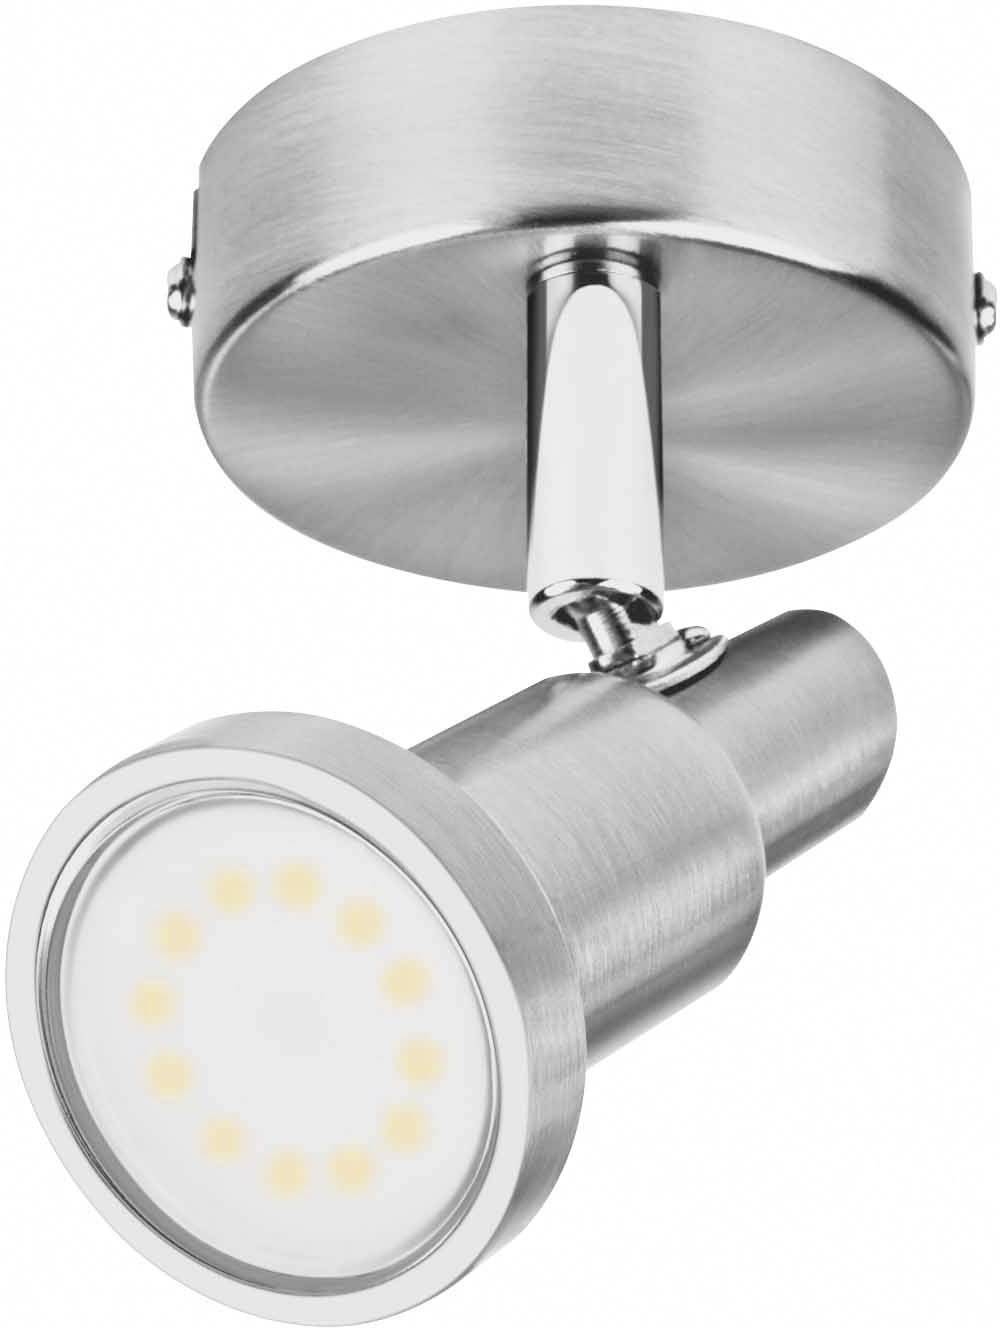 Led Spot Gu10 Ceiling Floodlight Led Gu10 Eec A A E 3 W Osram Led Spot 1x3w Grå 4052899393653 Nickel Brushed